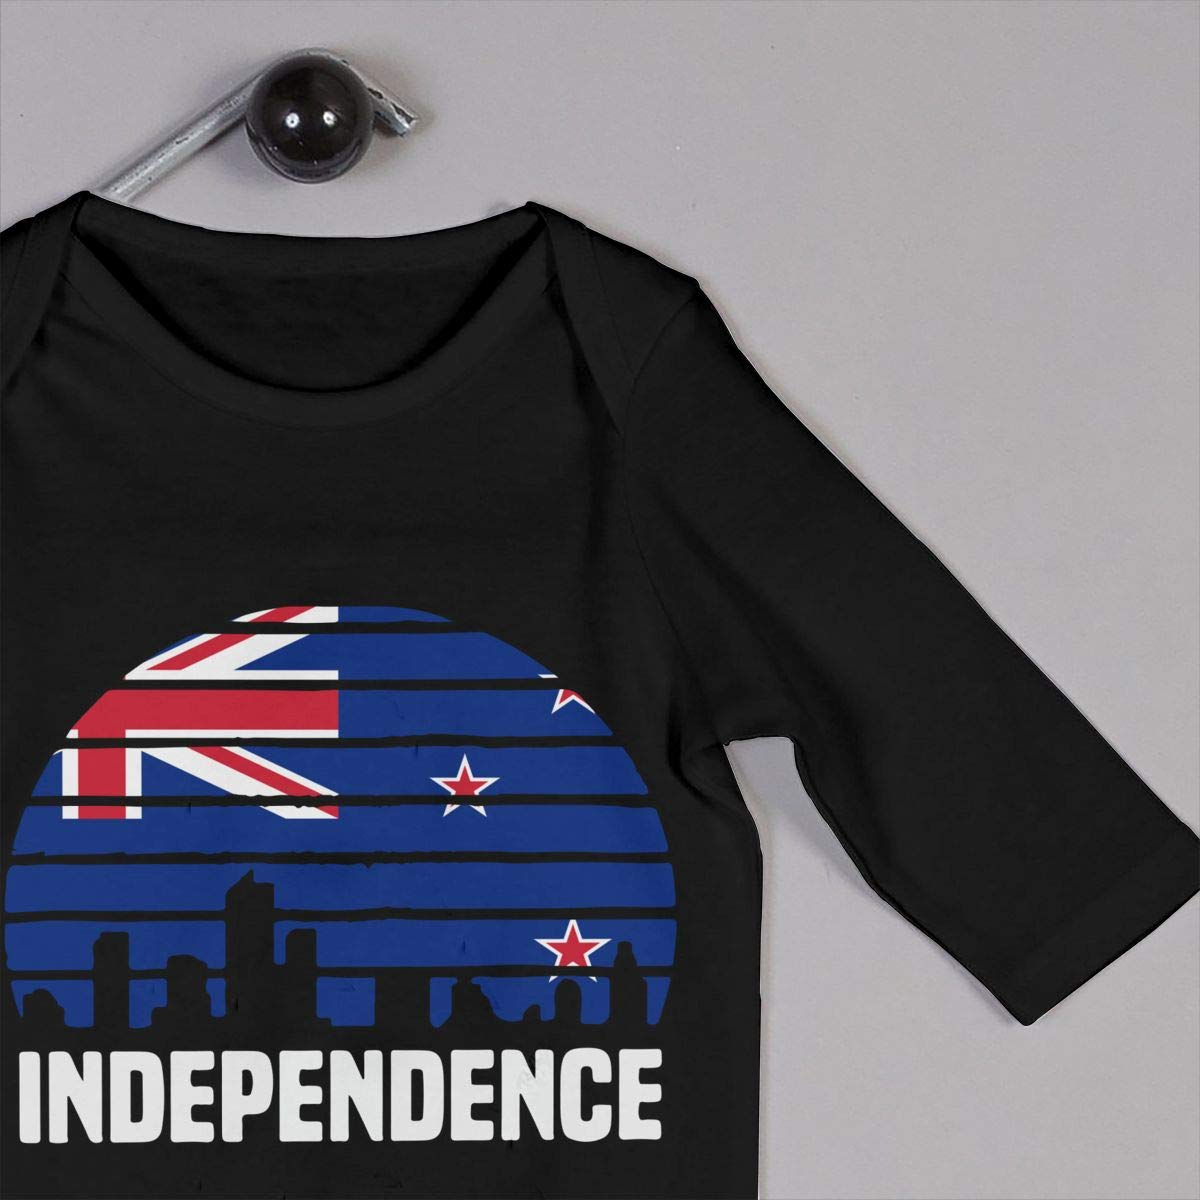 UGFGF-S3 Independence City New Zealand Flag Toddler Baby Long Sleeve Romper Jumpsuit Infant Romper Jumpsuit Onsies